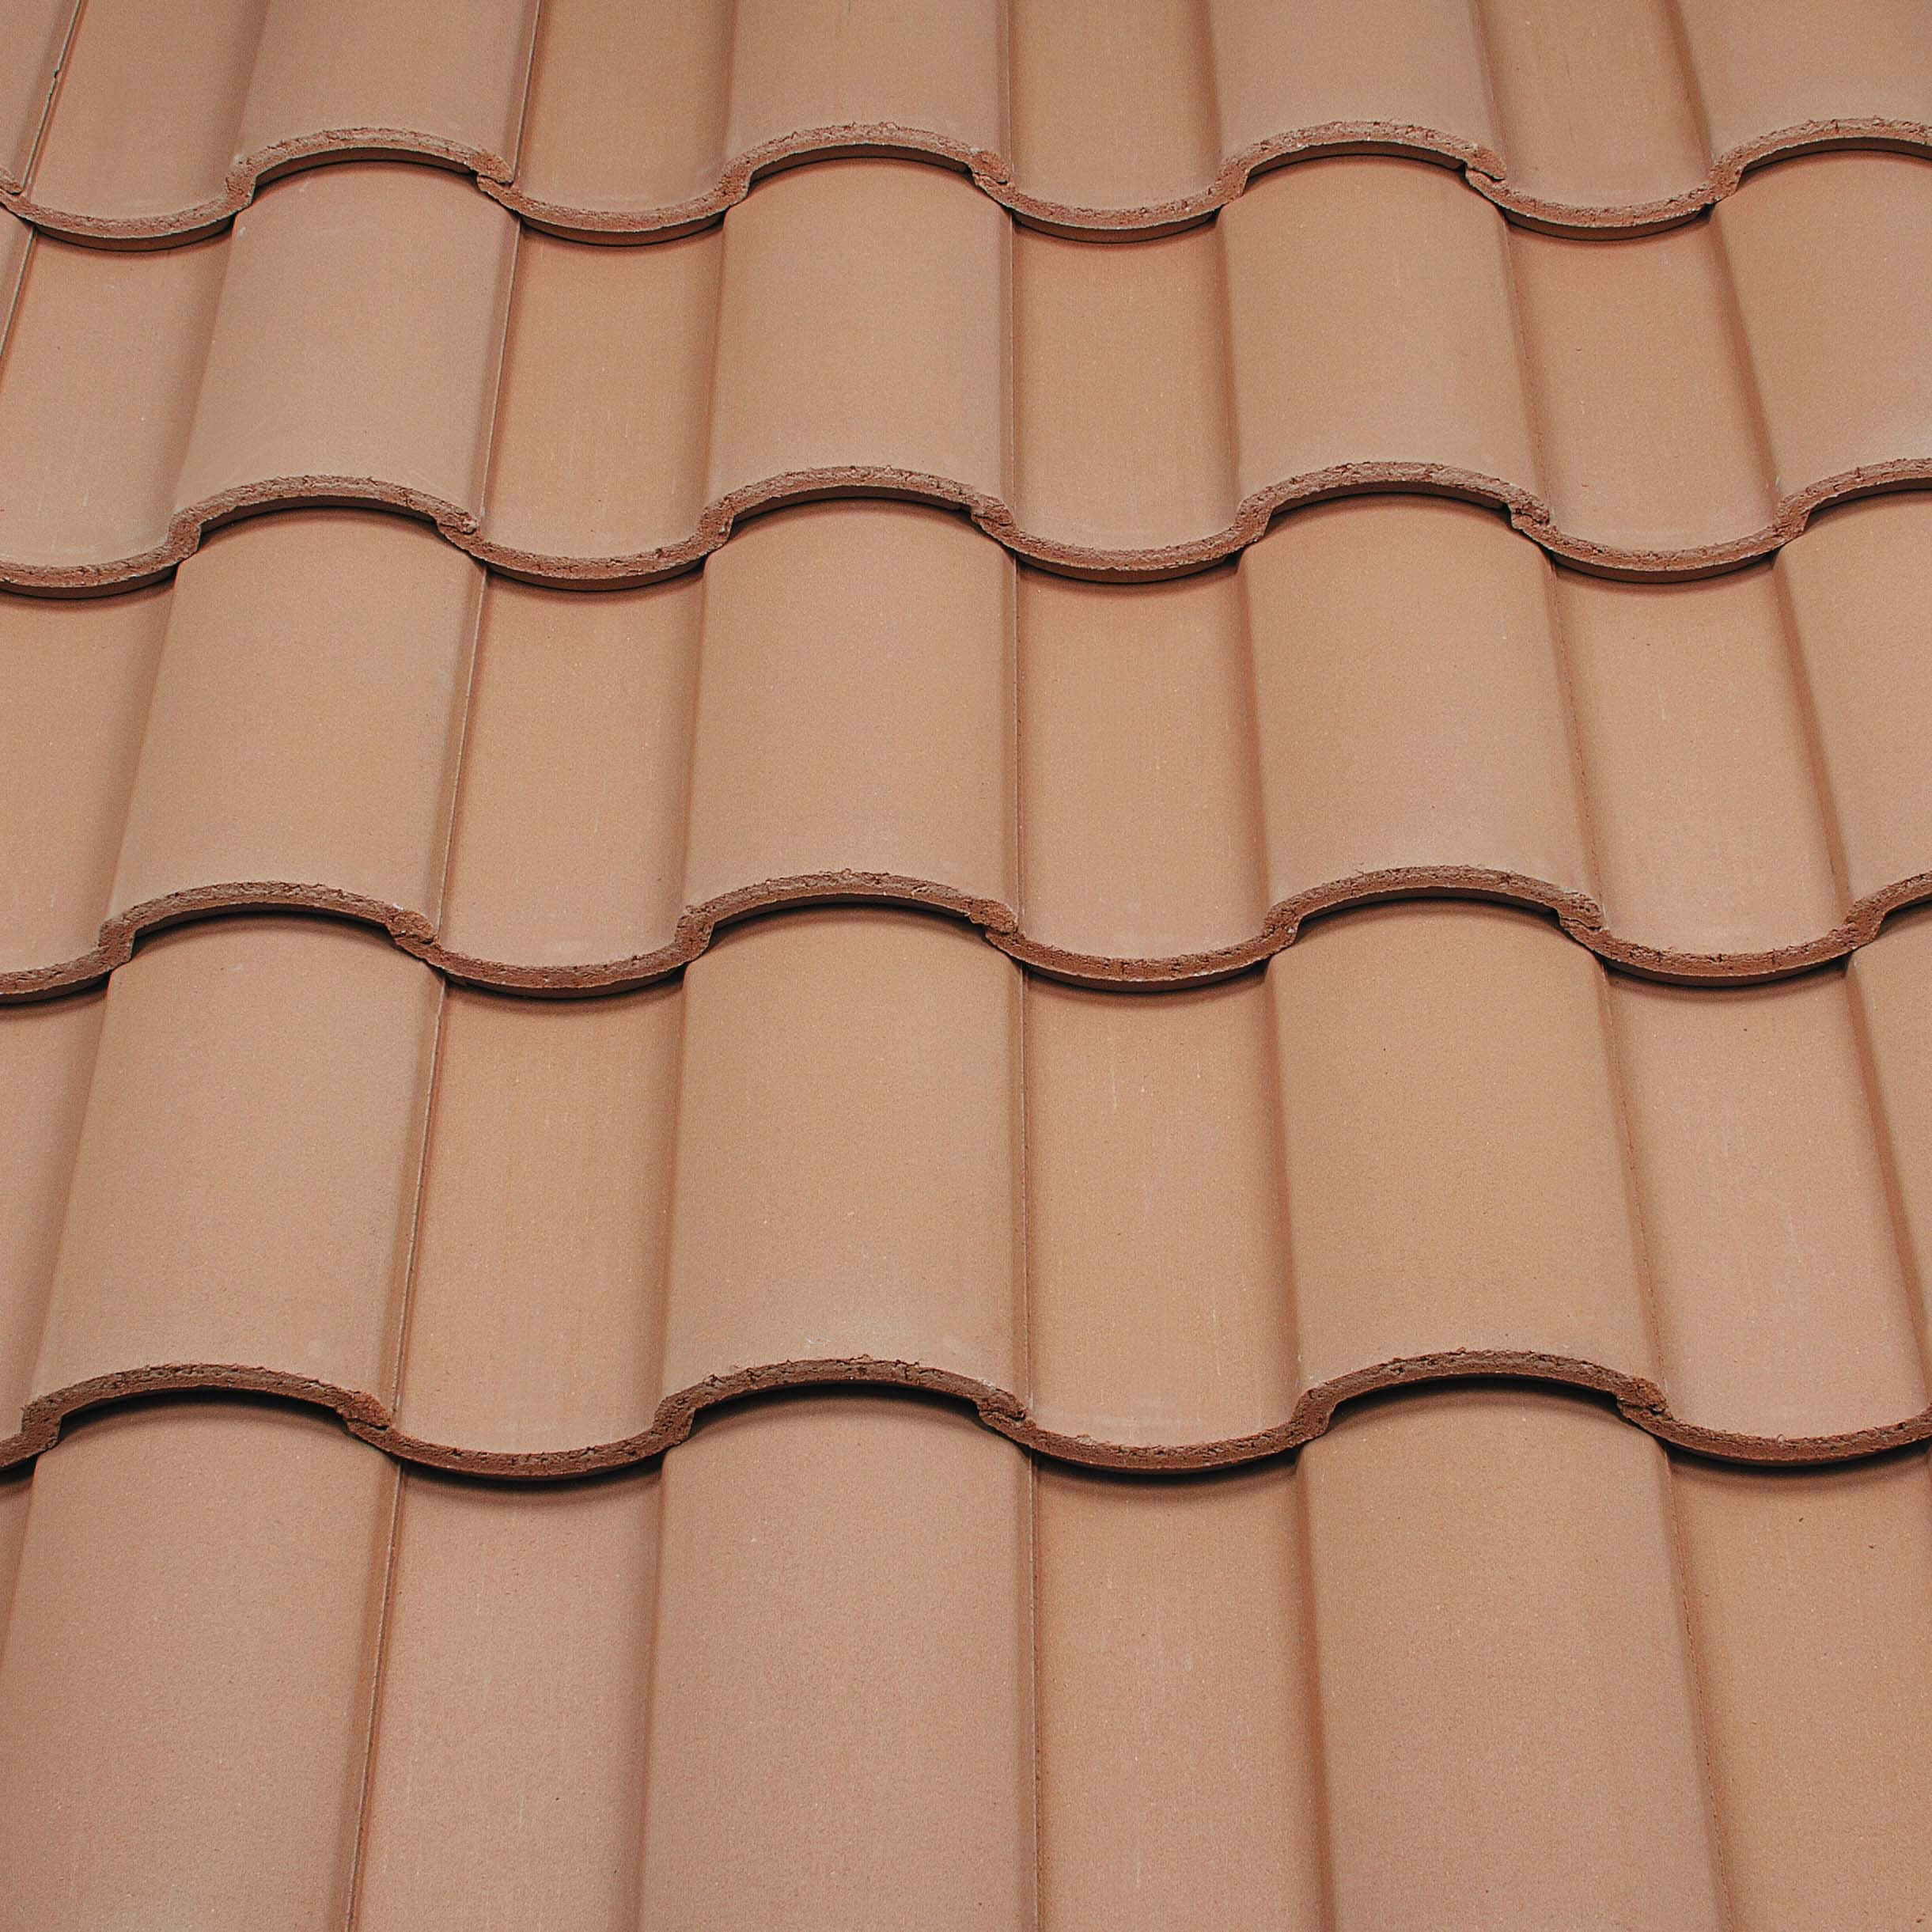 Clay Roof Tiles Installation